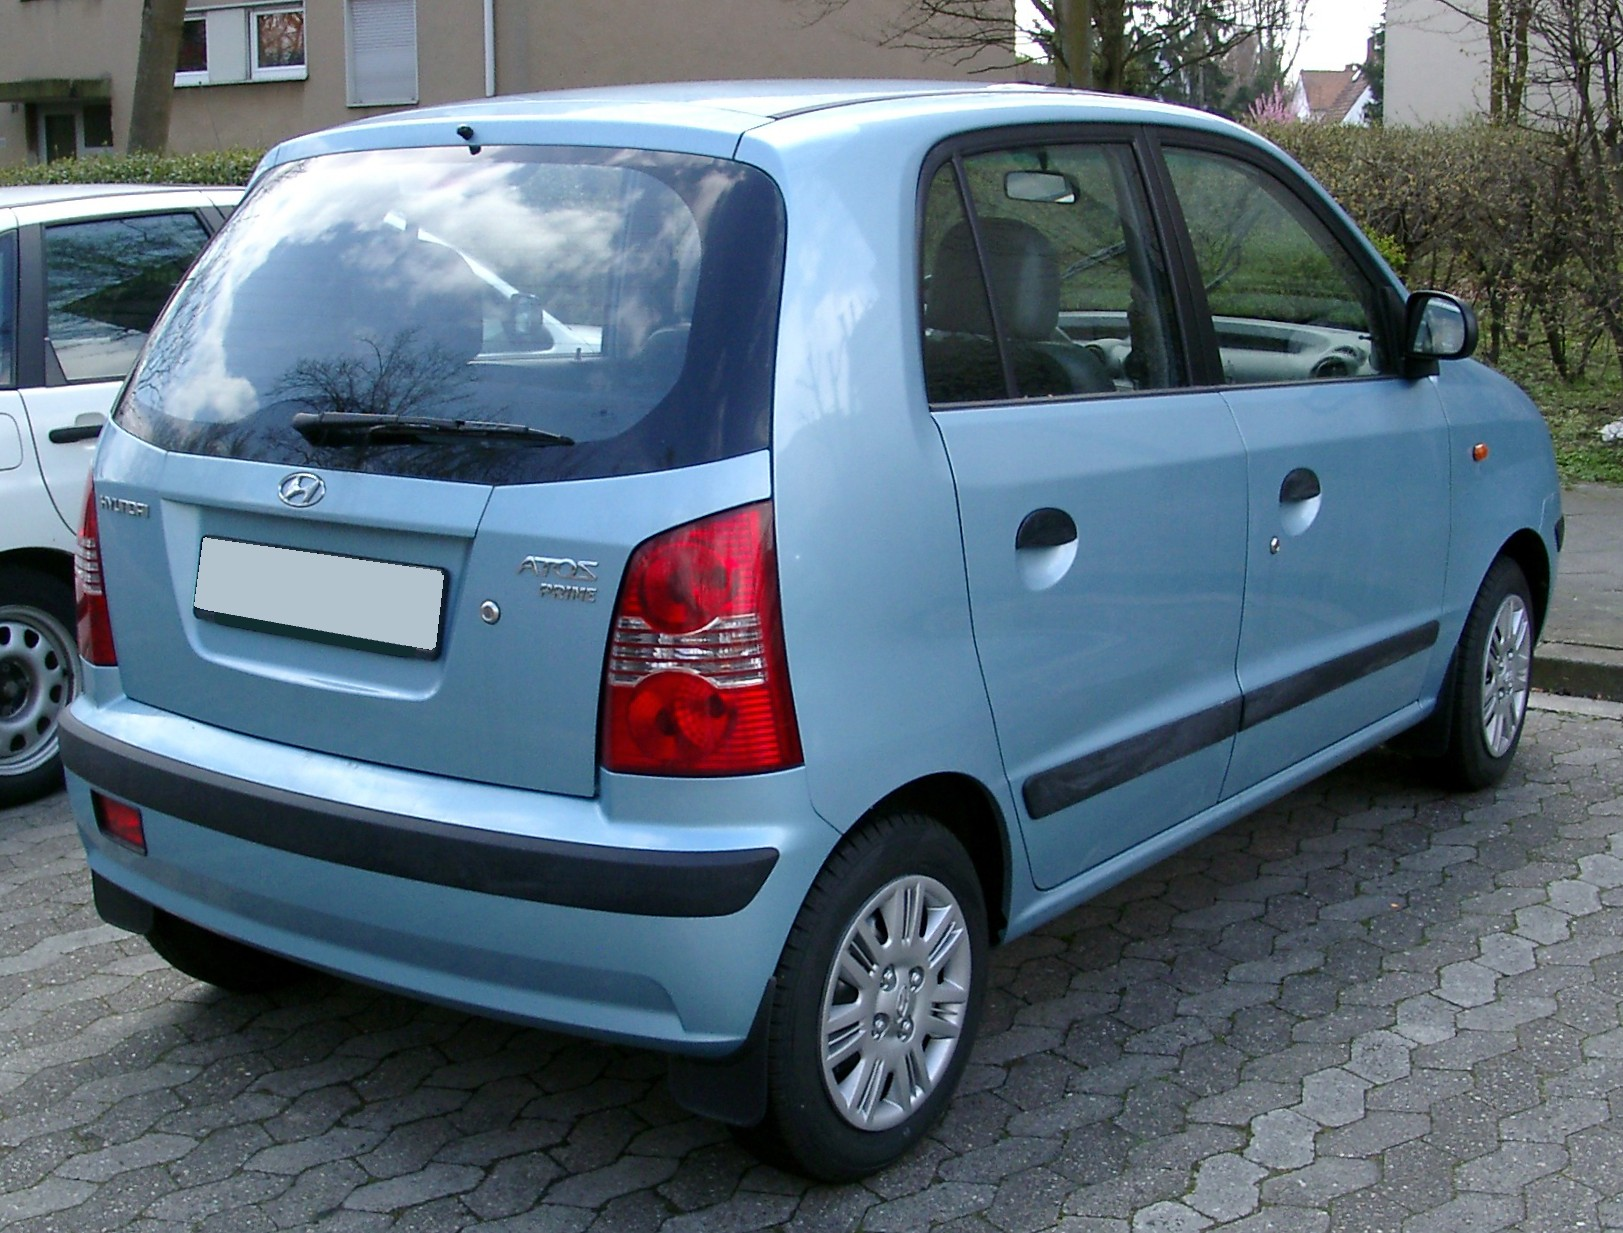 2003 hyundai atos prime pictures information and specs. Black Bedroom Furniture Sets. Home Design Ideas